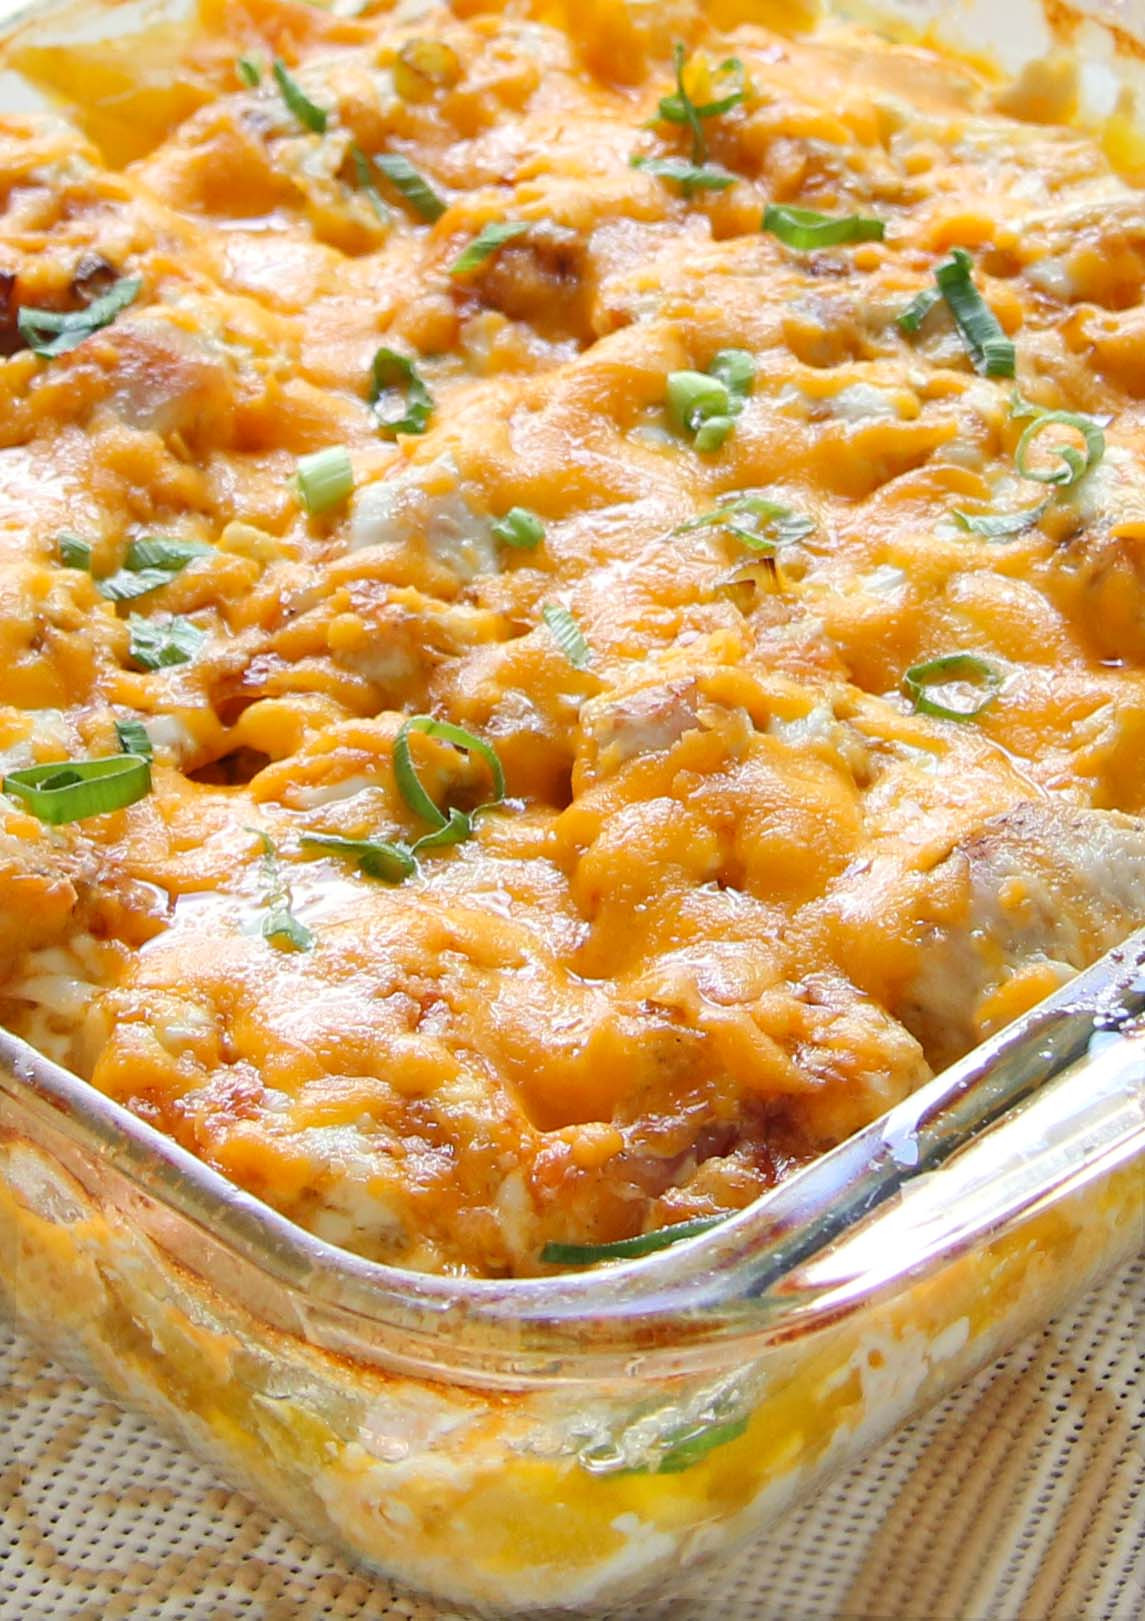 Casserole Recipes With Chicken  Loaded Baked Chicken Potato Casserole Cakescottage